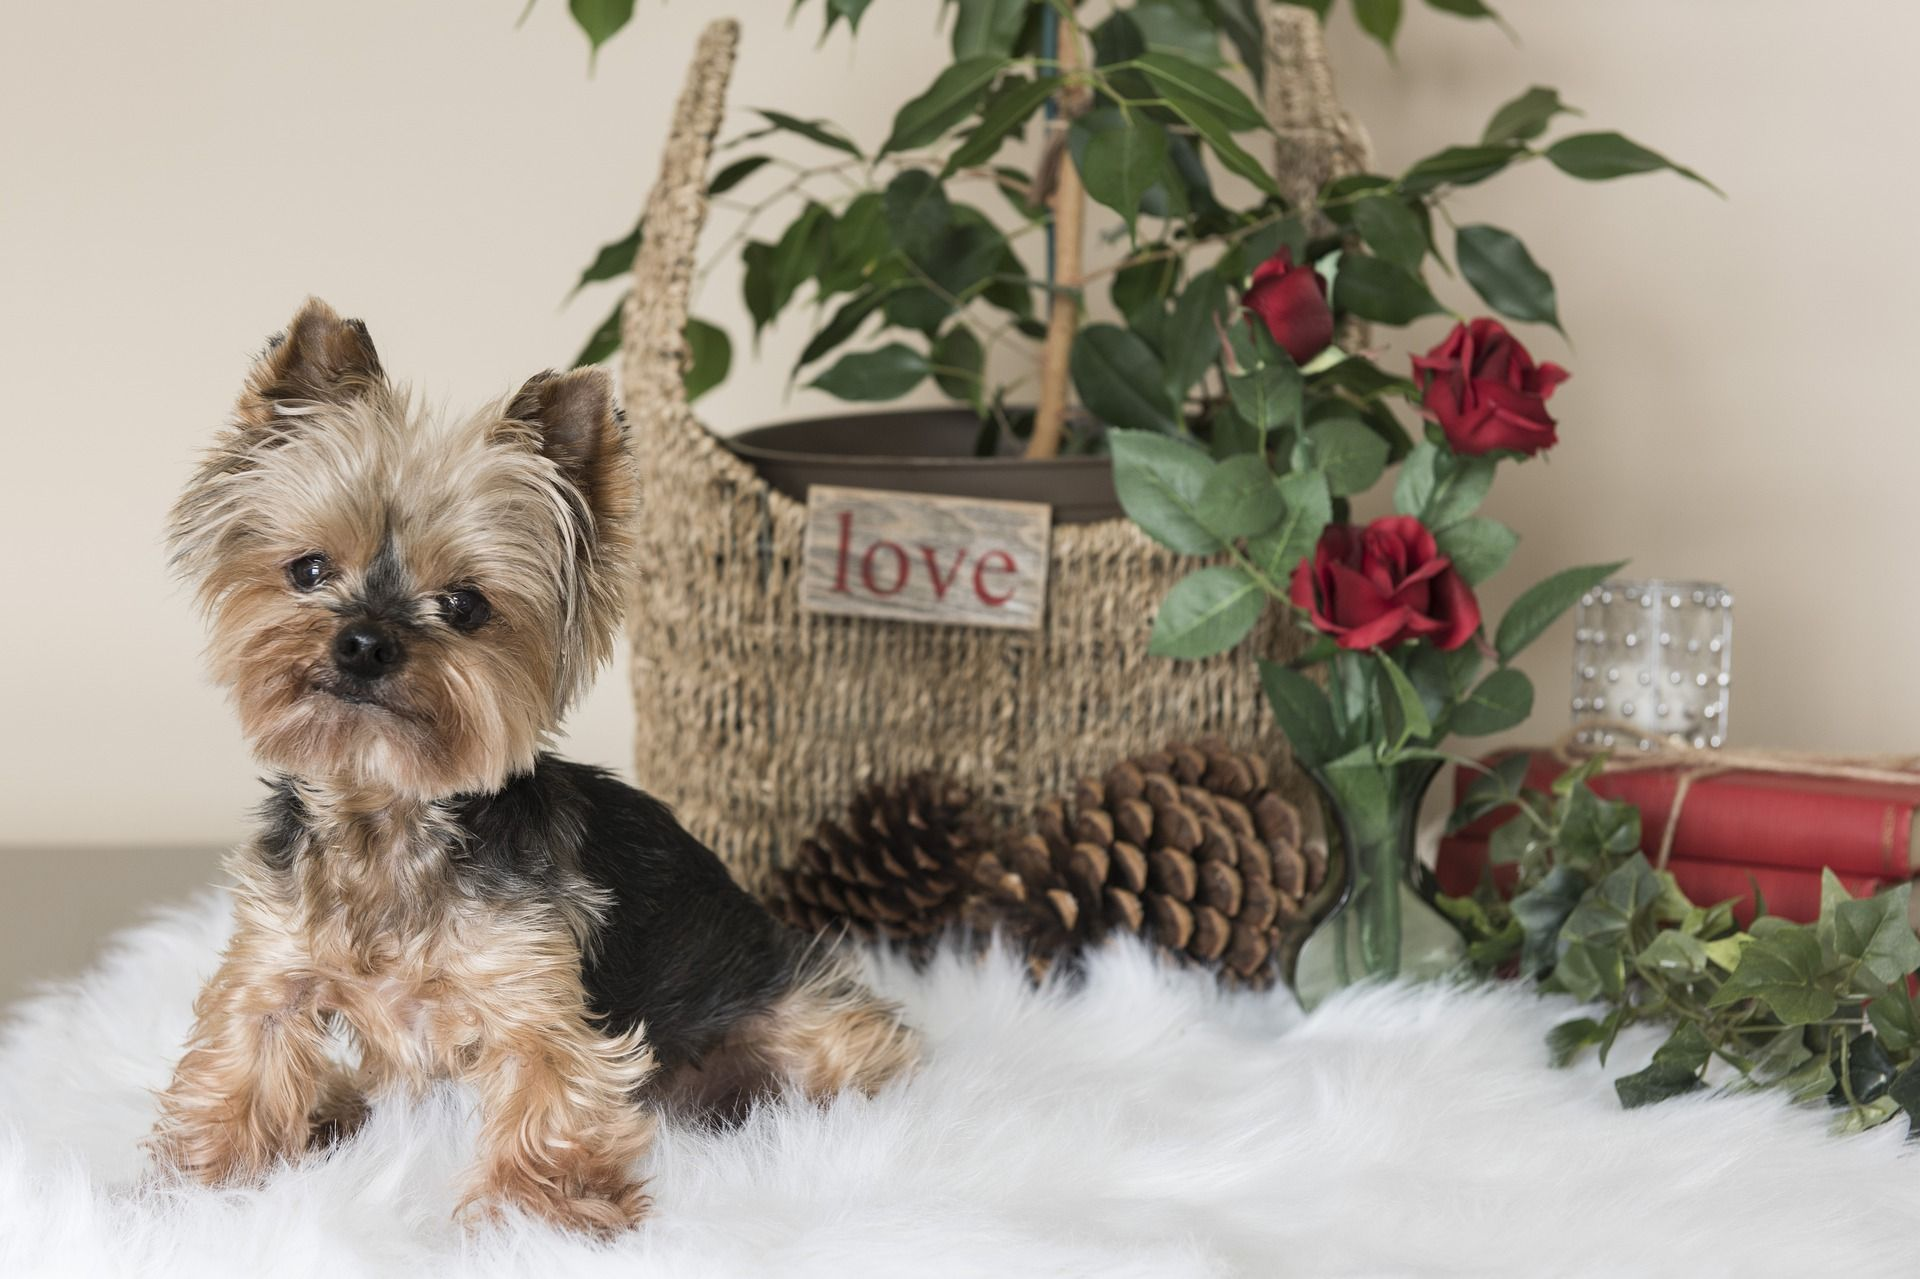 Valentines Day Gifts For Dogs Teacup Puppies Yorkie Puppy For Sale Yorkie Puppy